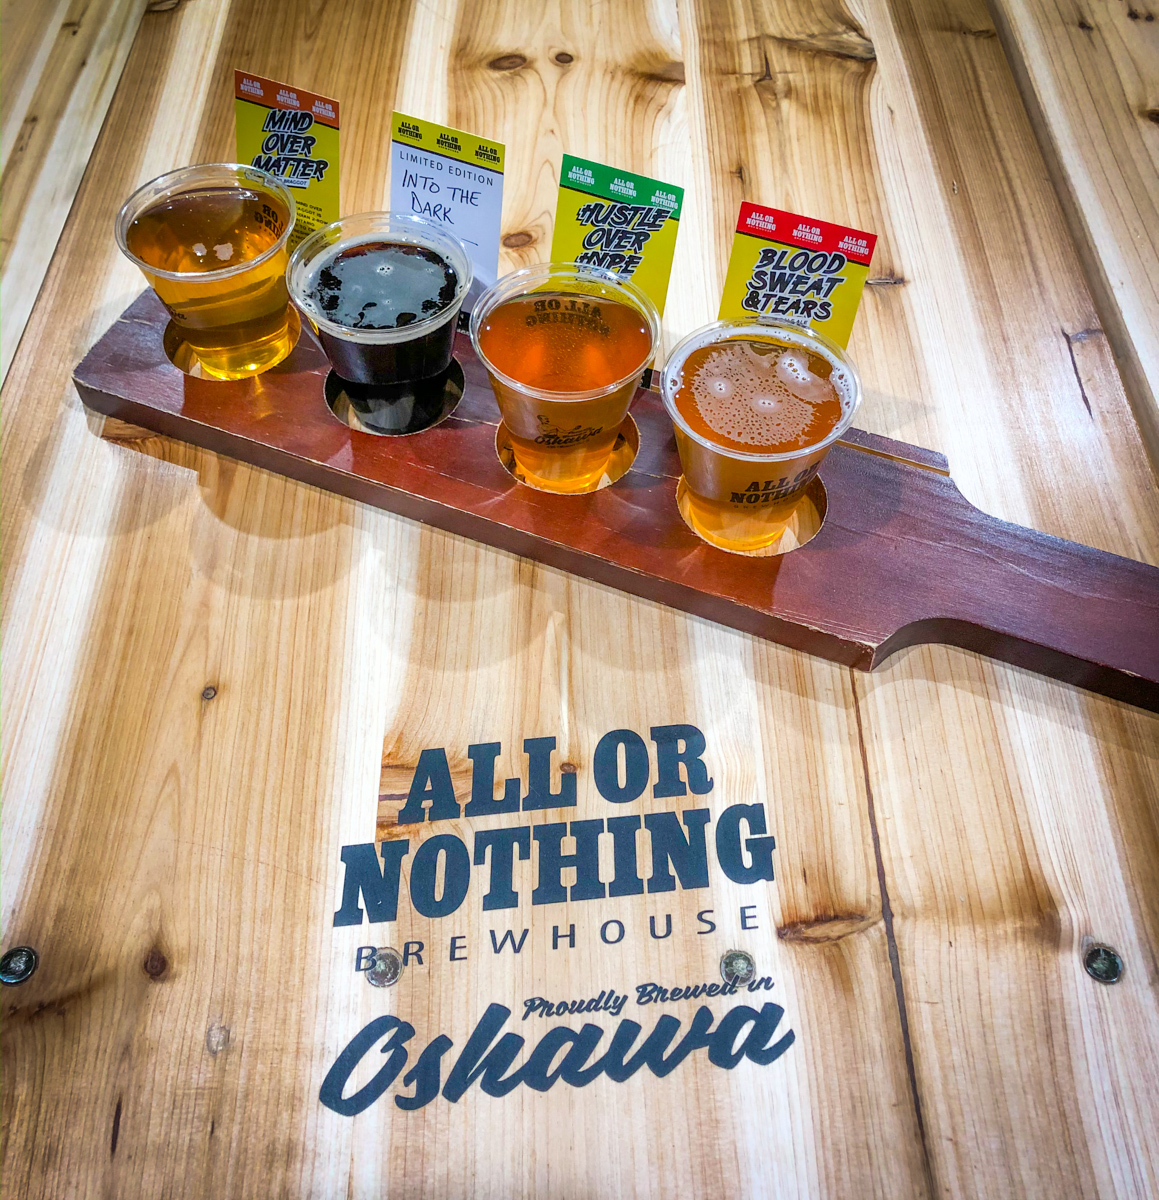 All or Nothing Brewhouse in Oshawa beer flight on wooden table with logo